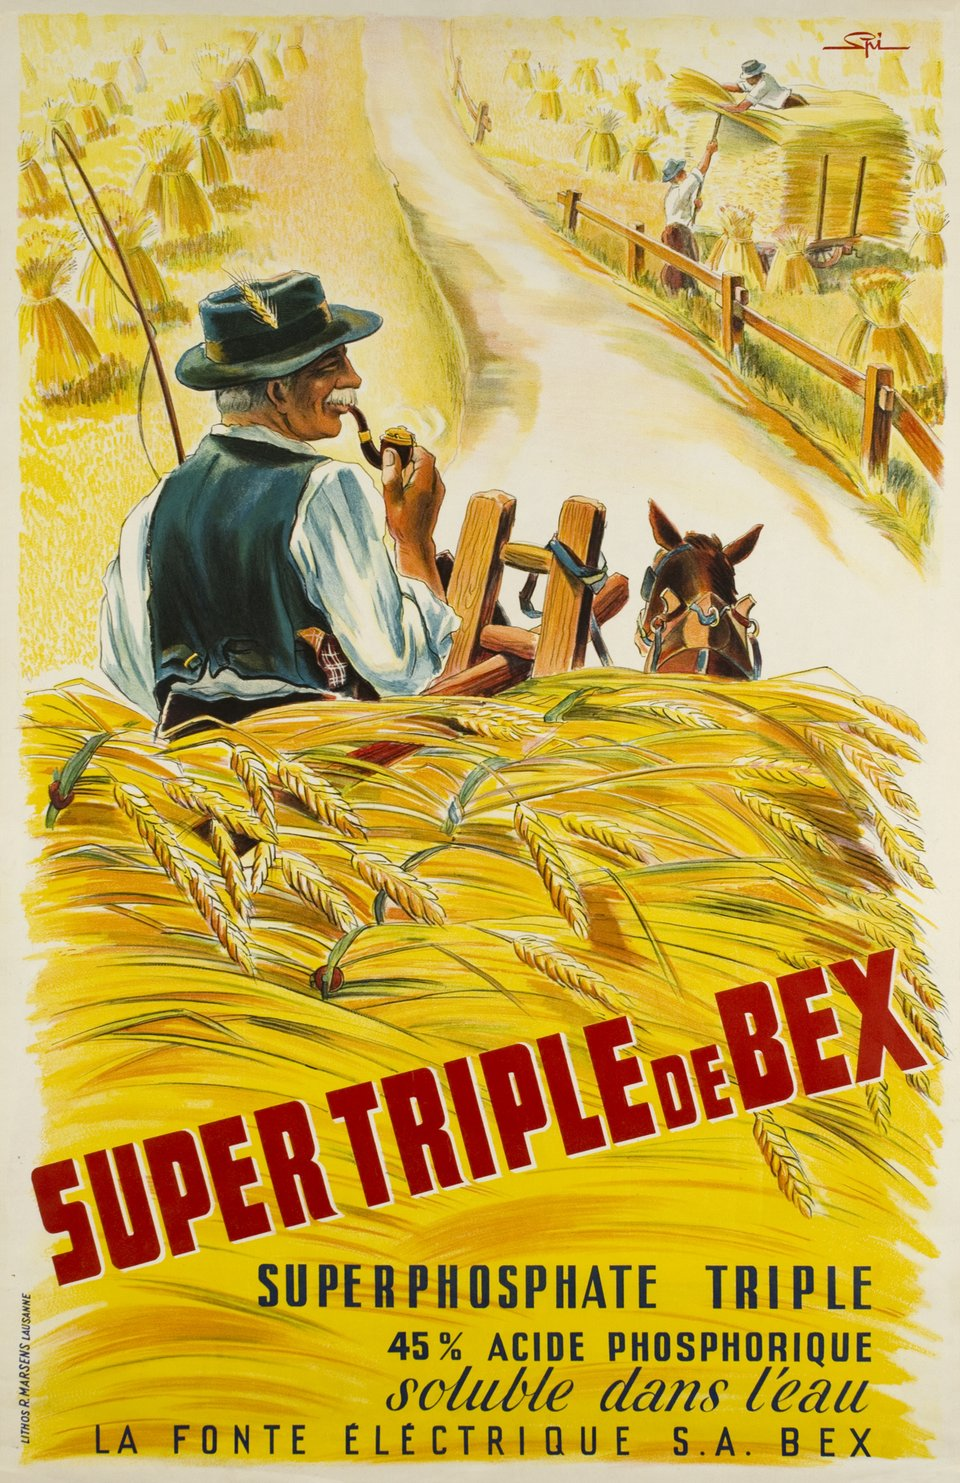 Super Triple de Bex – Affiche ancienne – Walther SPINNER – 1950